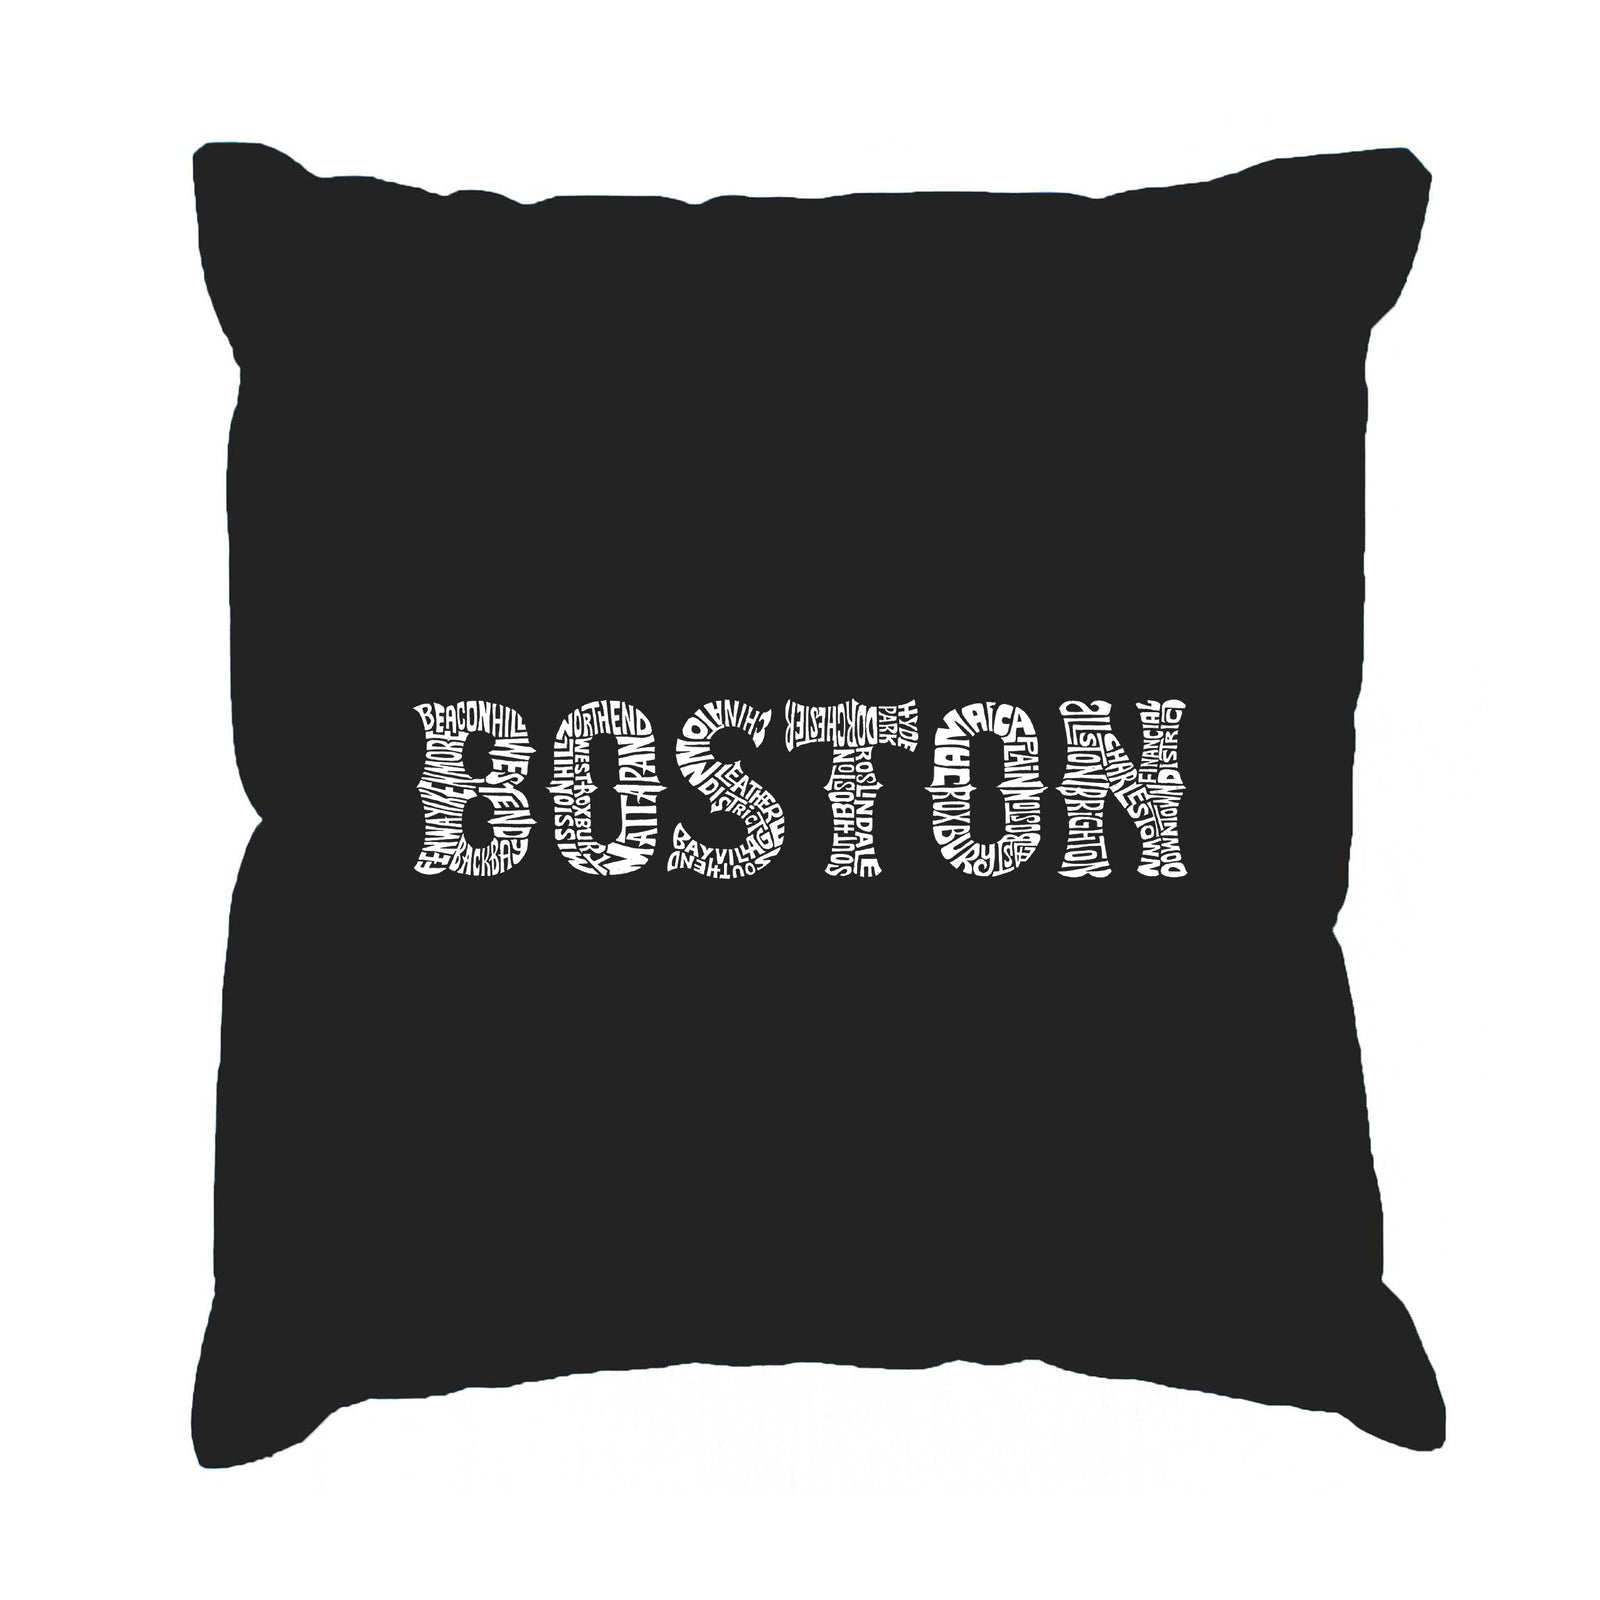 Throw Pillow Cover - BOSTON NEIGHBORHOODS